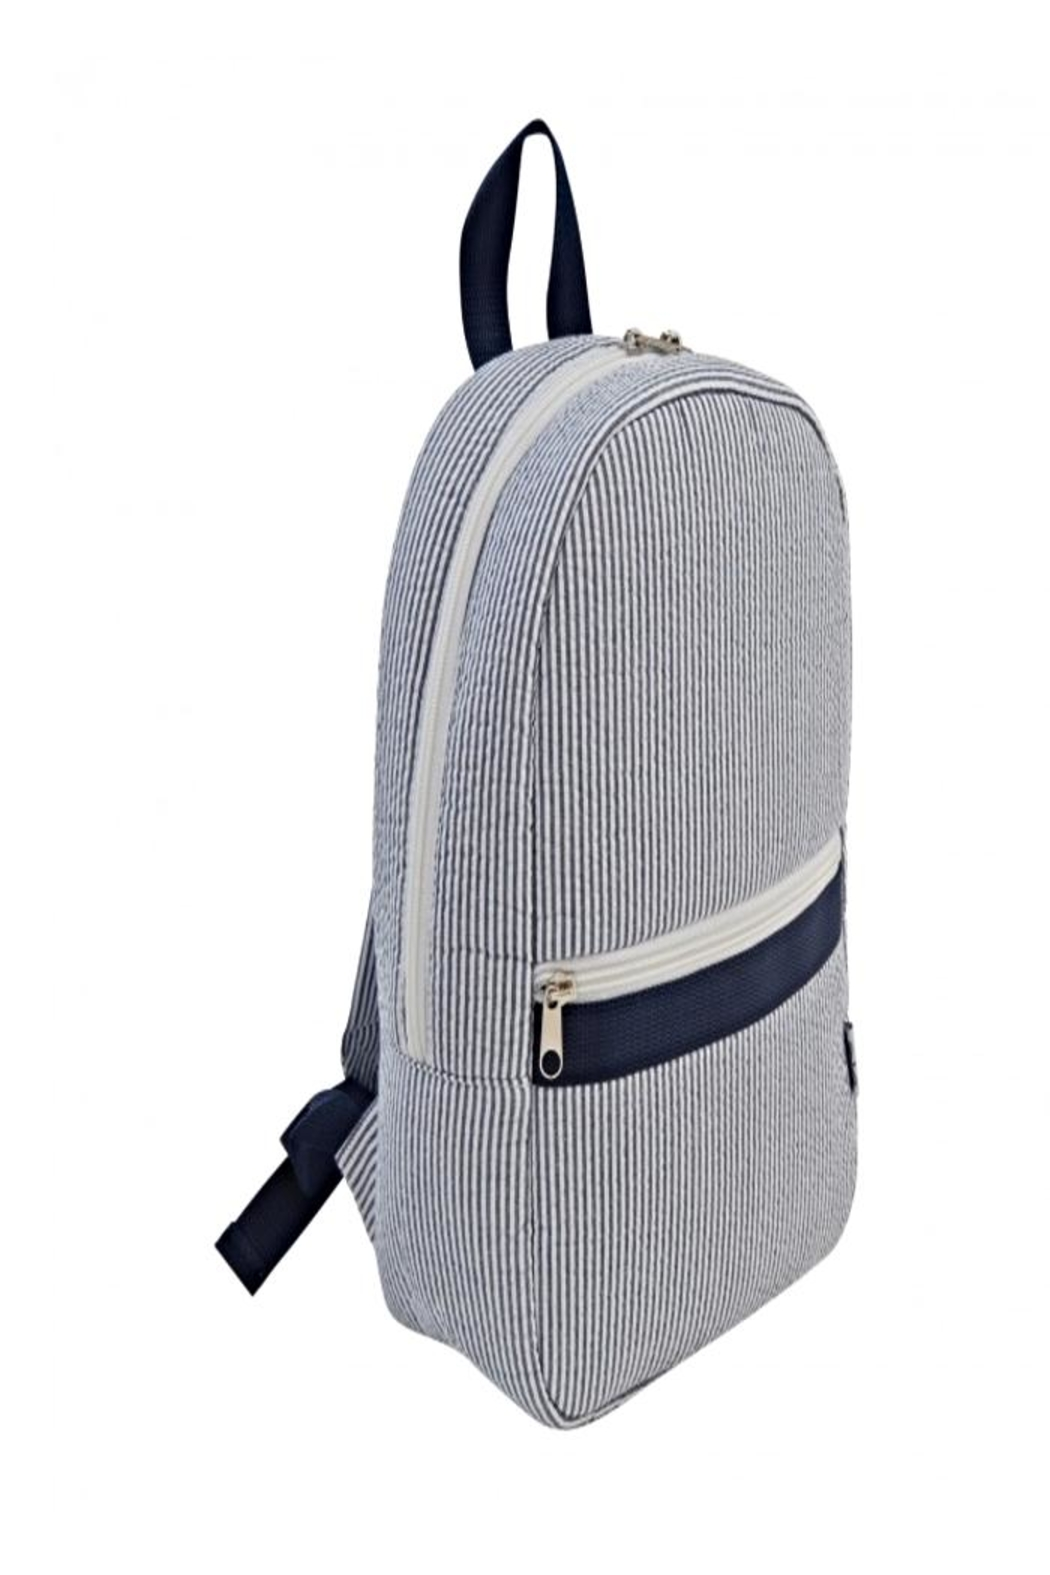 Mud Pie Navy Seersucker Backpack - Main Image